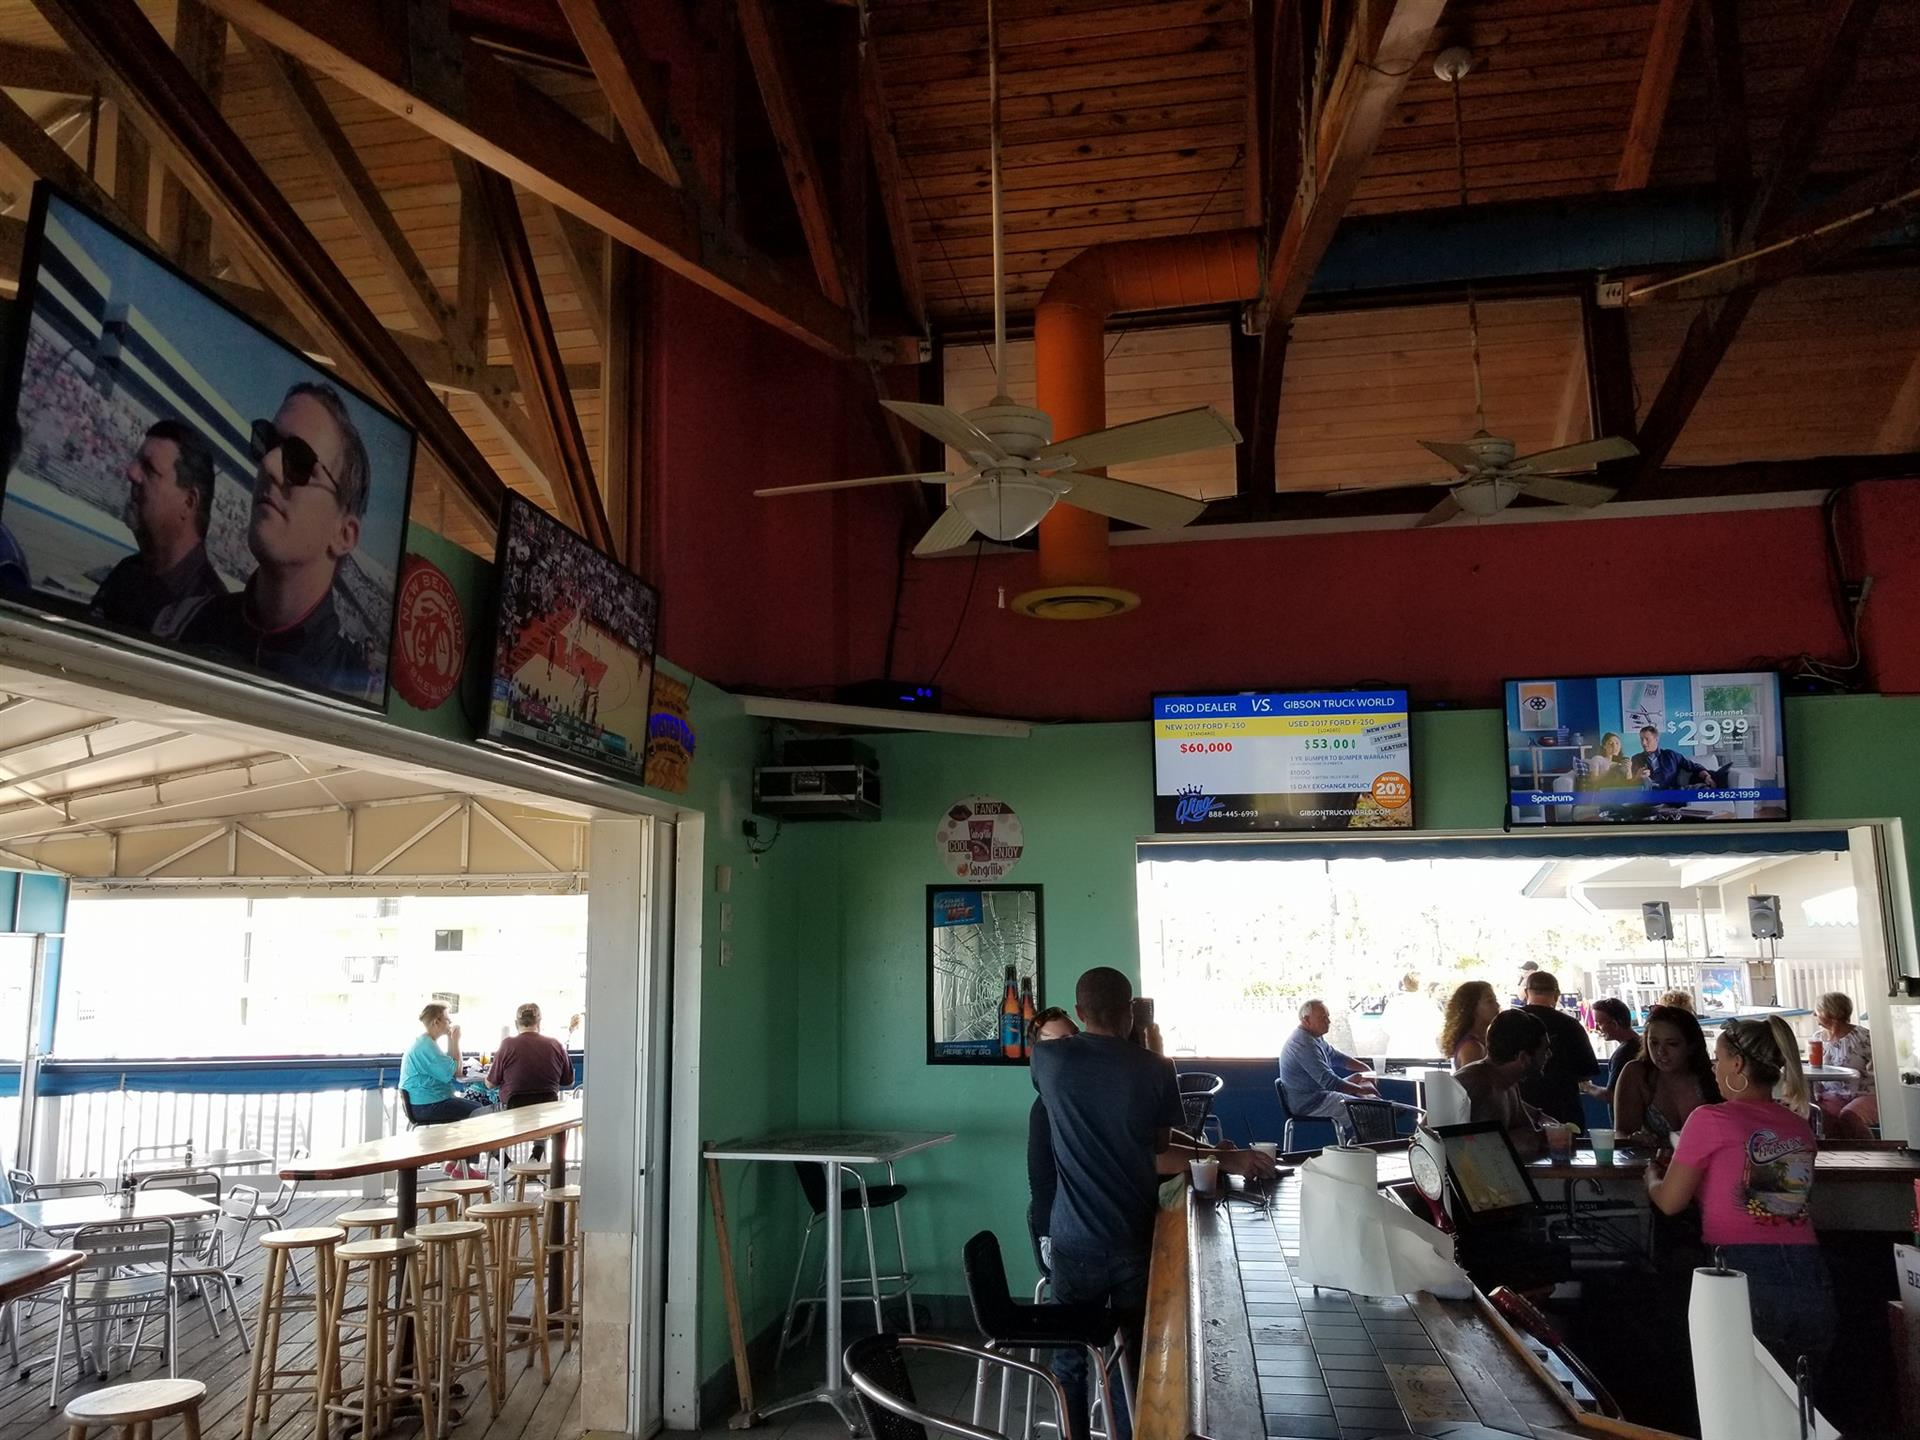 interior bar with tvs on the wall with customers crowded around the counter